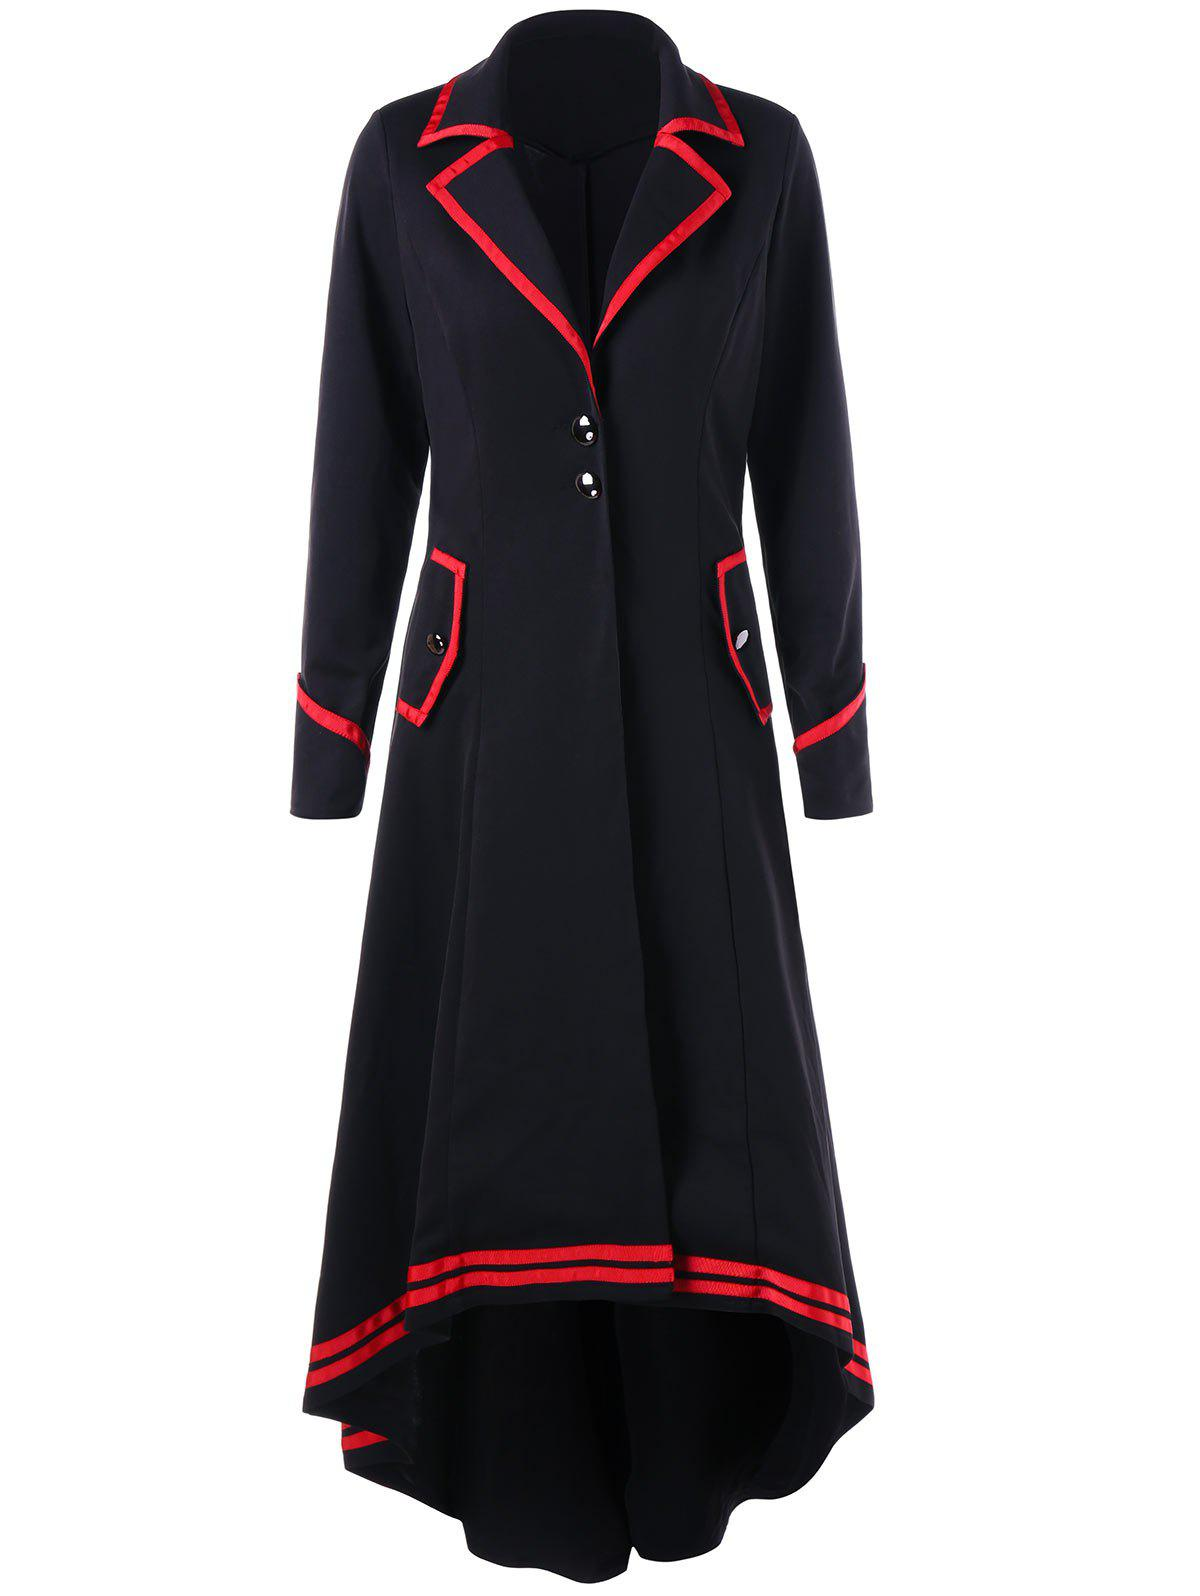 Contrast Trim High Low Hem Trench CoatWOMEN<br><br>Size: XL; Color: BLACK&amp;RED; Clothes Type: Trench; Material: Polyester; Type: Slim; Shirt Length: Long; Sleeve Length: Full; Collar: Notched Collar; Pattern Type: Solid; Style: Fashion; Season: Fall,Spring; Weight: 0.8000kg; Package Contents: 1 x Trench Coat;